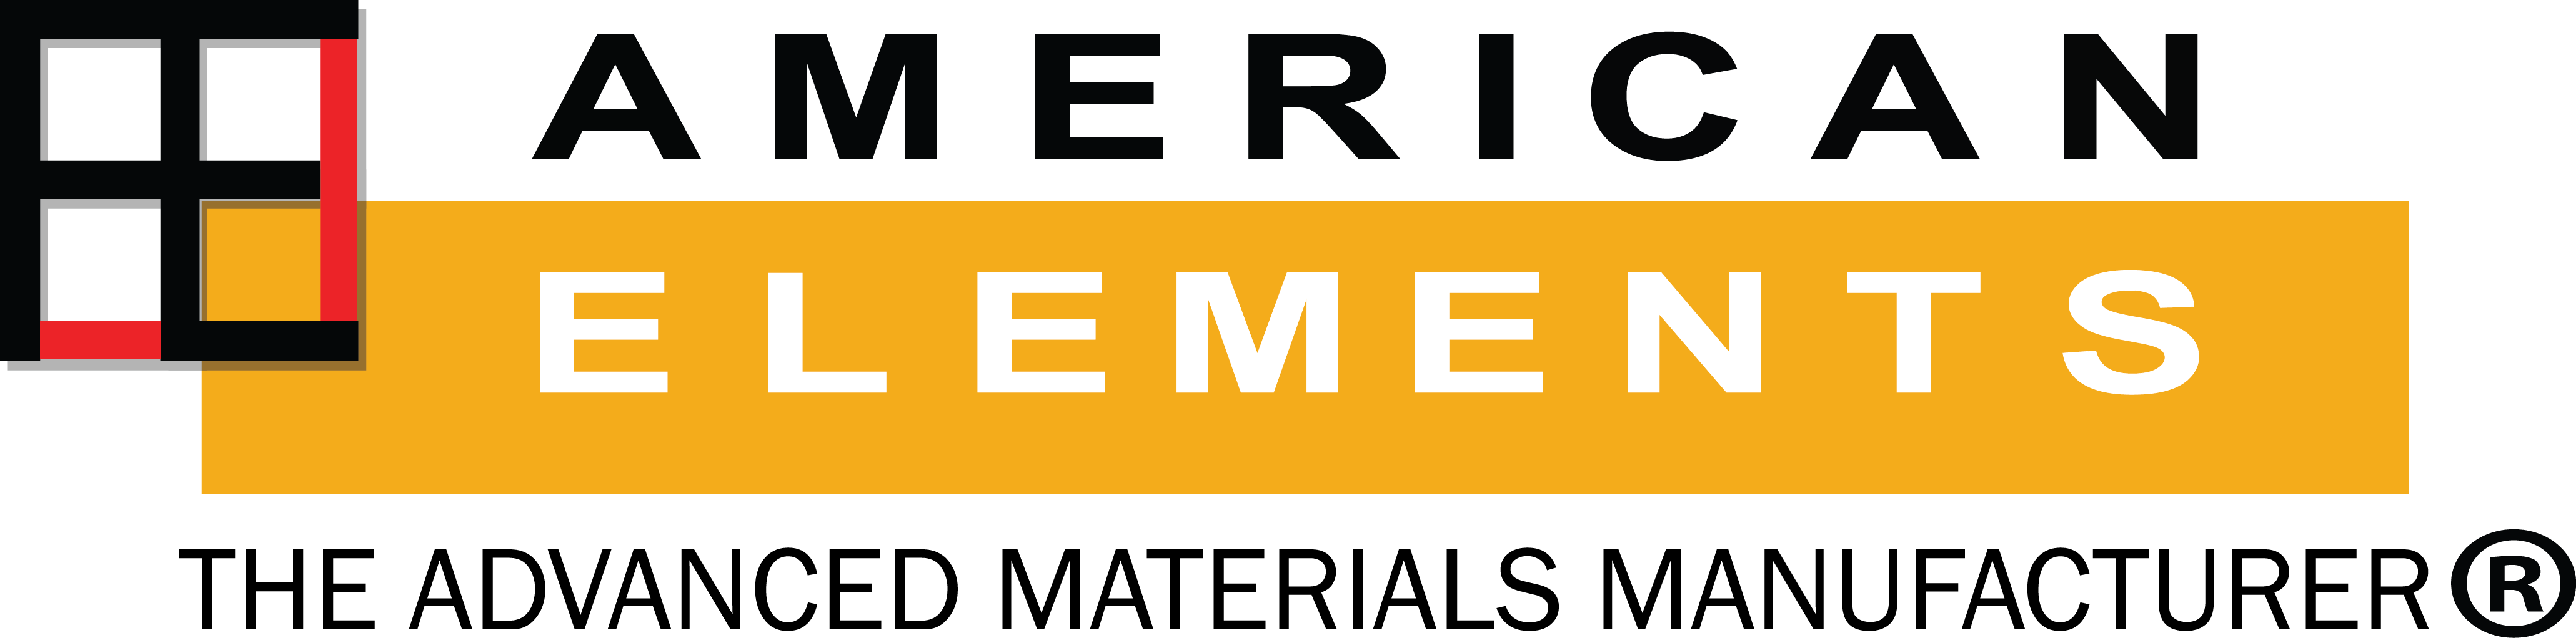 American Elements: global manufacturer of biomaterials, coatings, probes, biosensors, biomarkers, & nanoparticles for medical imaging, drug delivery & Nanomedicine development